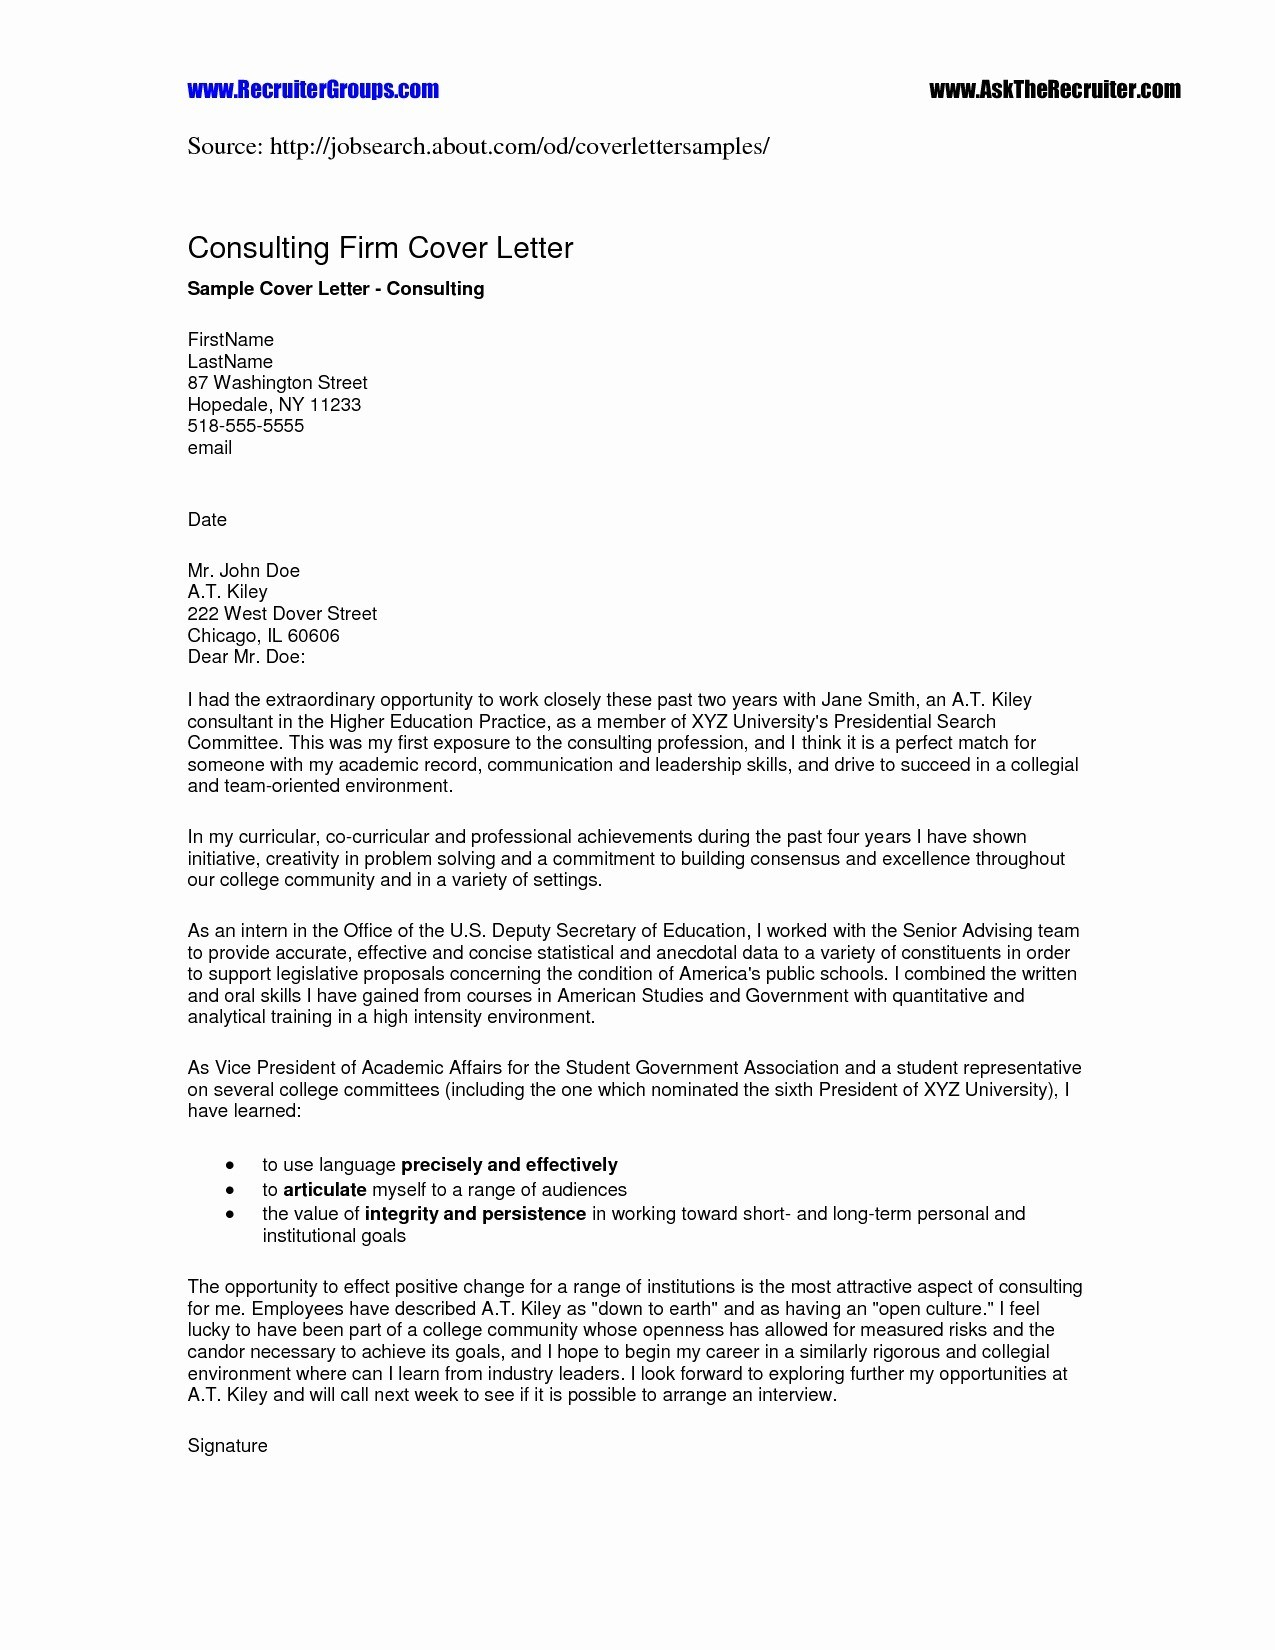 Free Cover Letter Template Microsoft Word - Resume and Cover Letter Templates Fresh Teacher Cover Letter